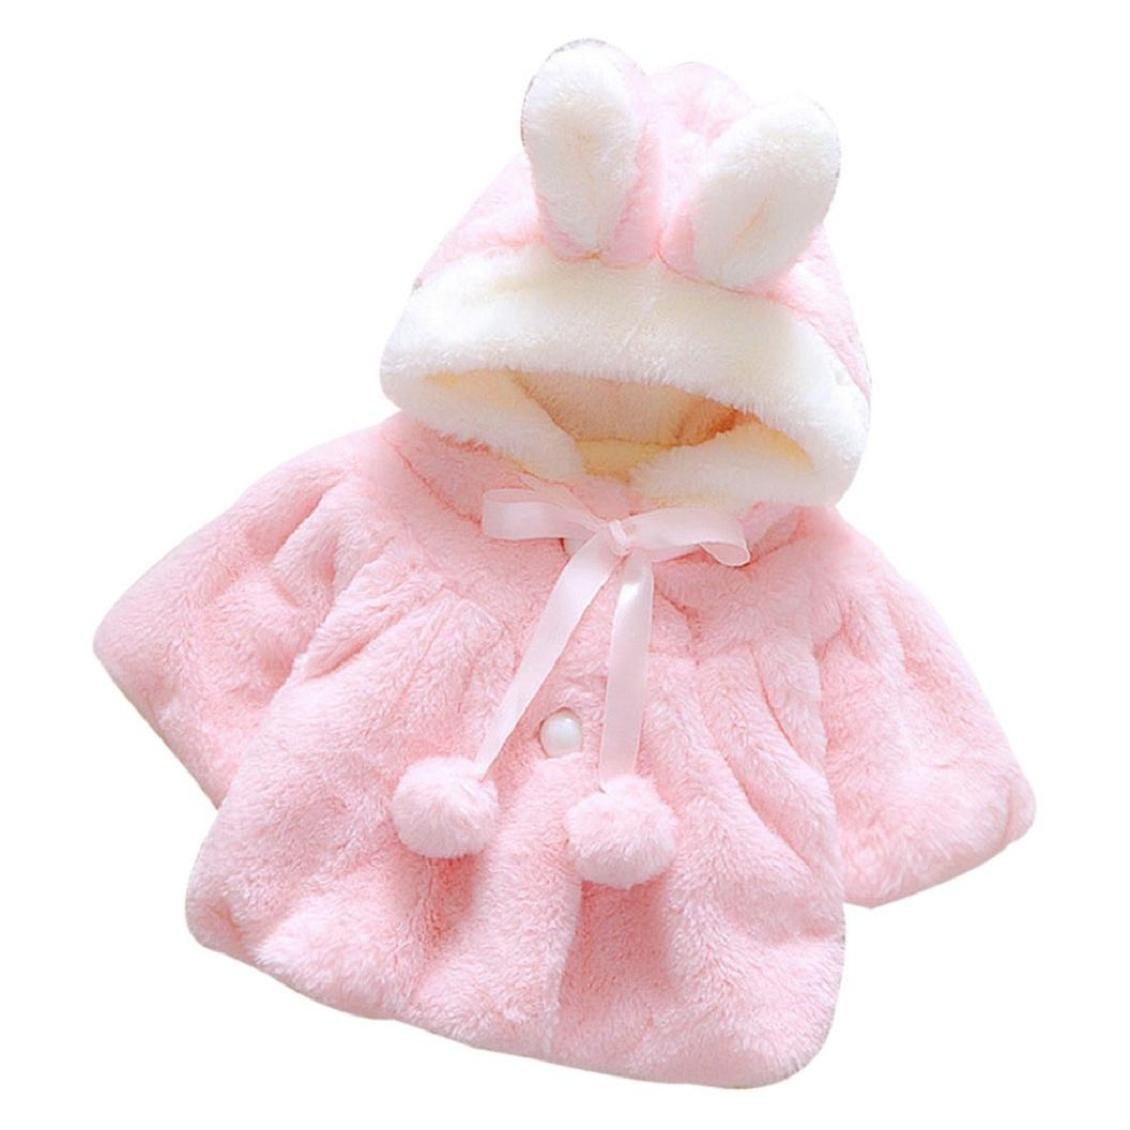 Baby Hooded Coat 0-2 Years, Transer® Infant Girls Coat 0-24 Months Baby Clothes Newborn Outfits Kids Clothes Toddlers Outwear with Button Cloak New born Girl Overcoats